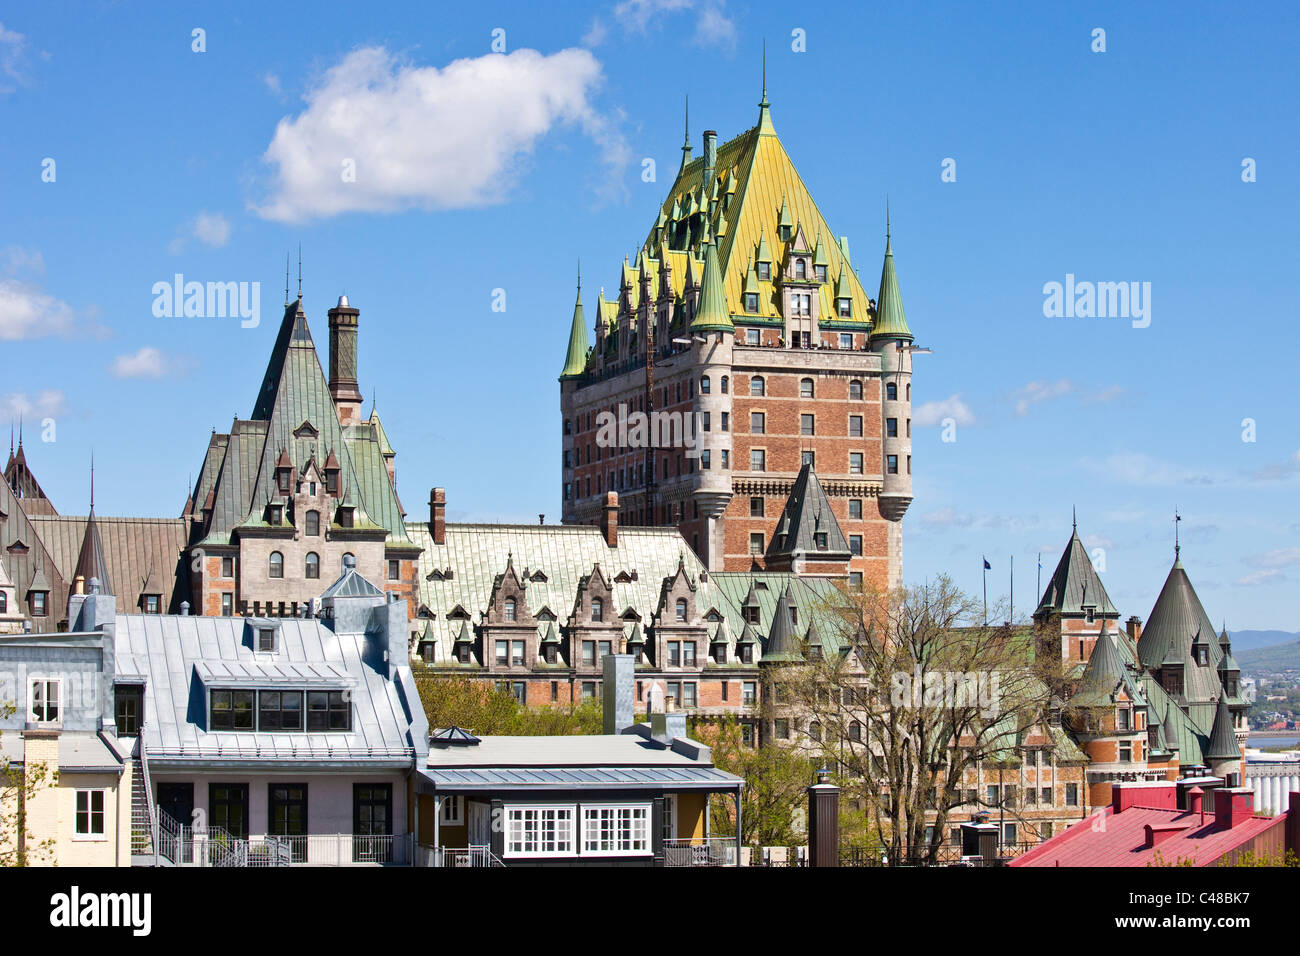 Chateau Frontenac, old town, Quebec City, Canada - Stock Image